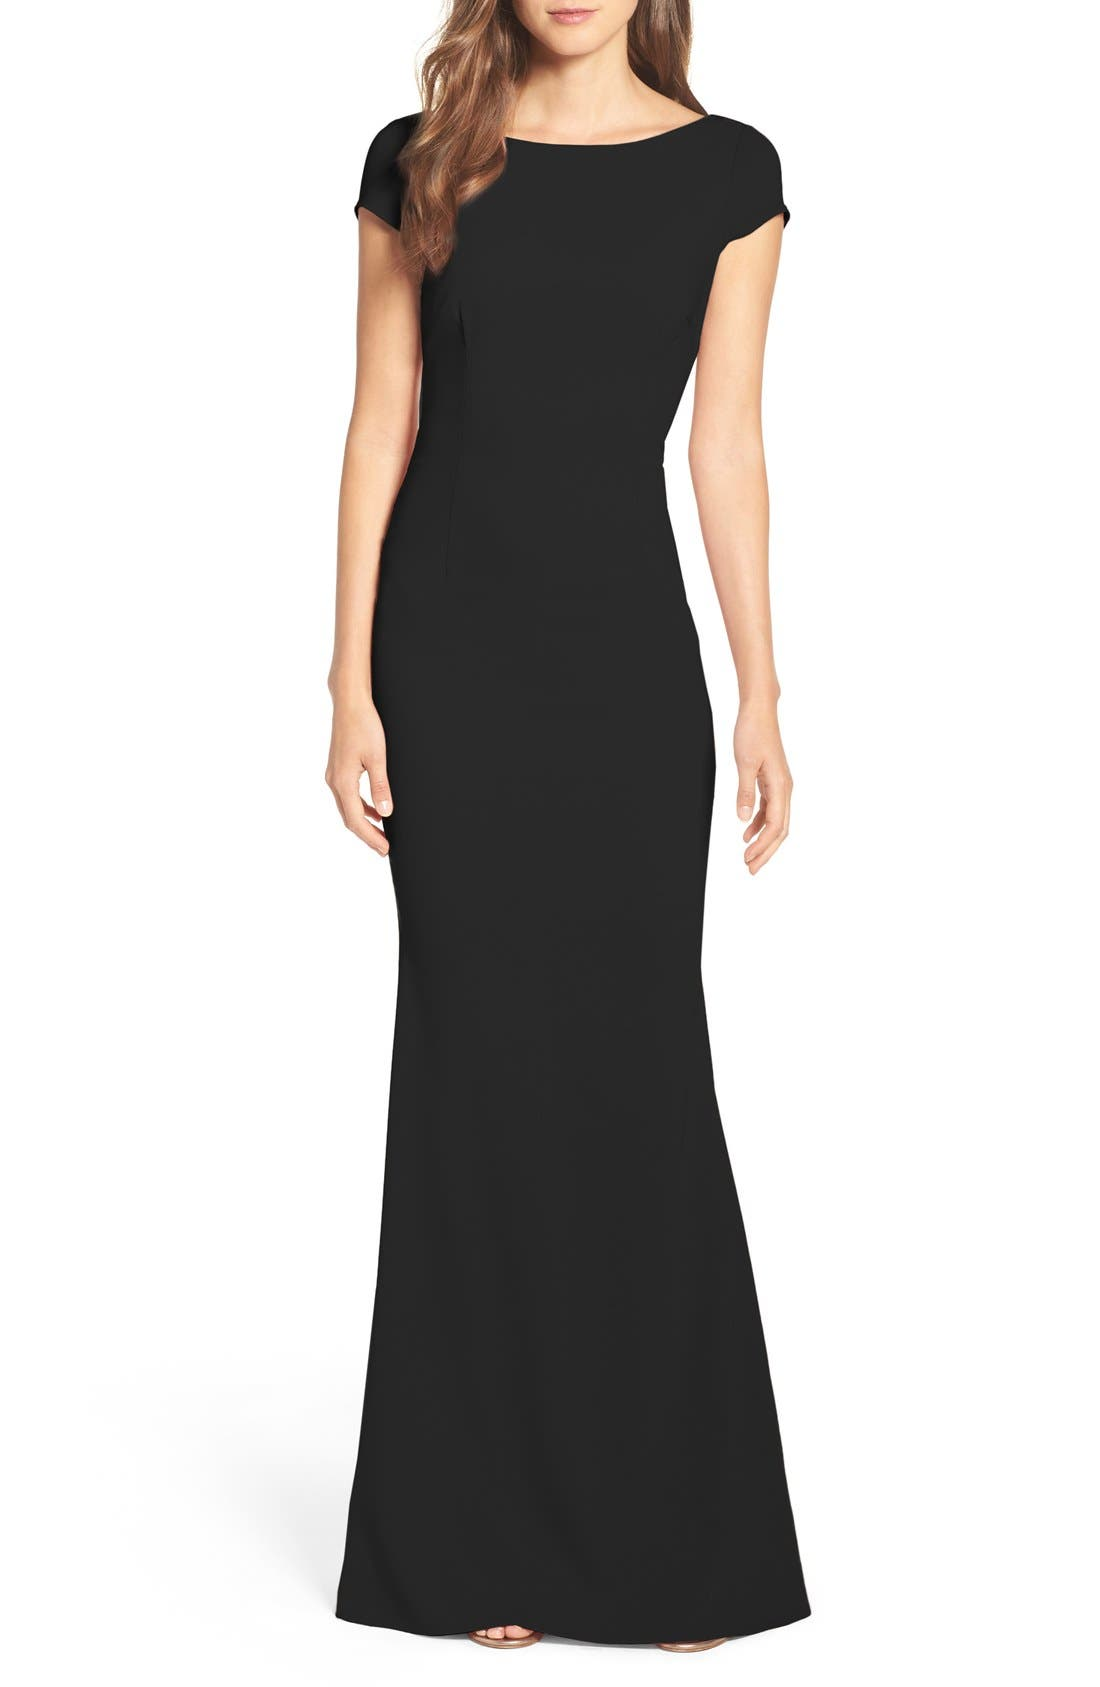 Intrigue Plunge Knot Back Gown,                         Main,                         color, Black